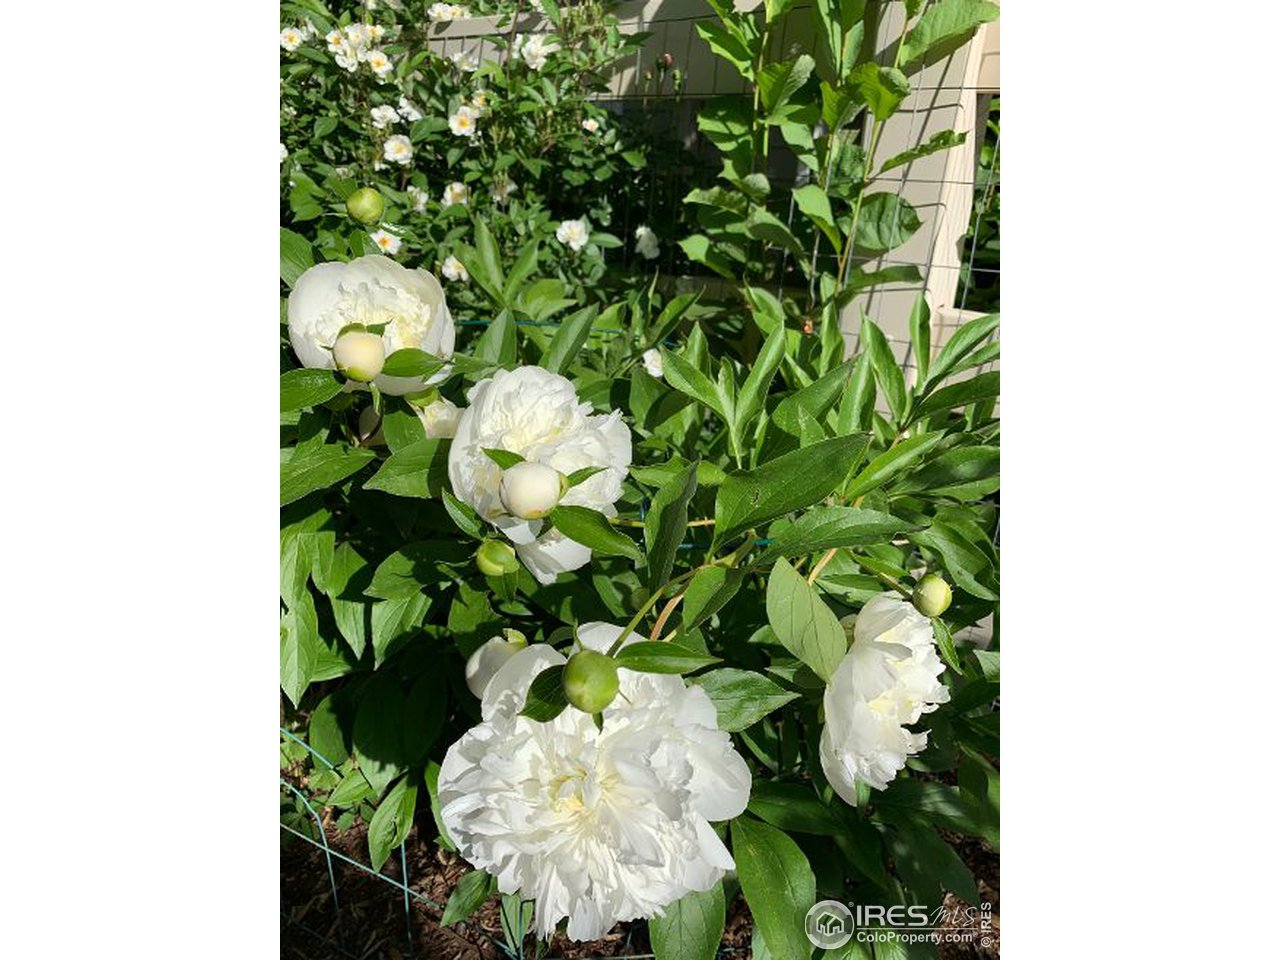 Can you say Peonies?